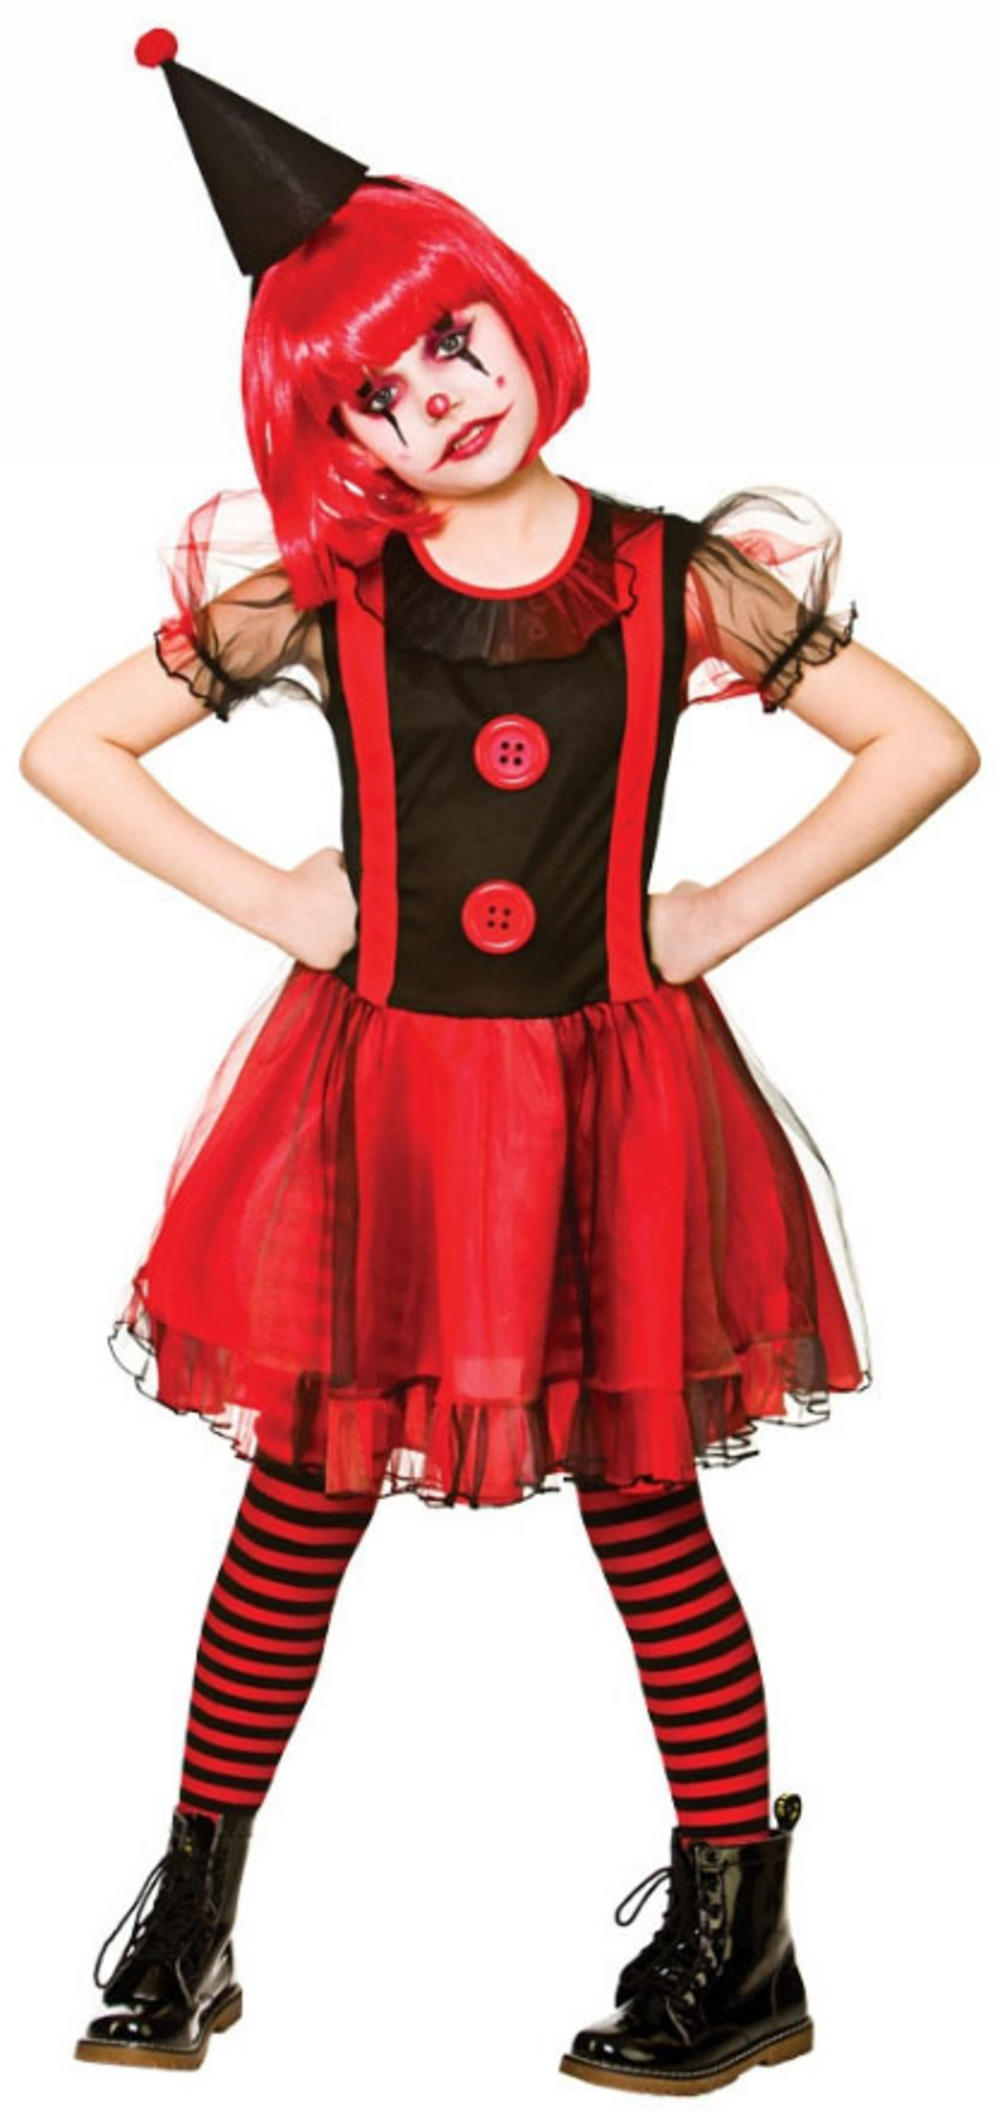 Killer Clown Halloween Costumes For Girls.Freaky Clown Girls Costume